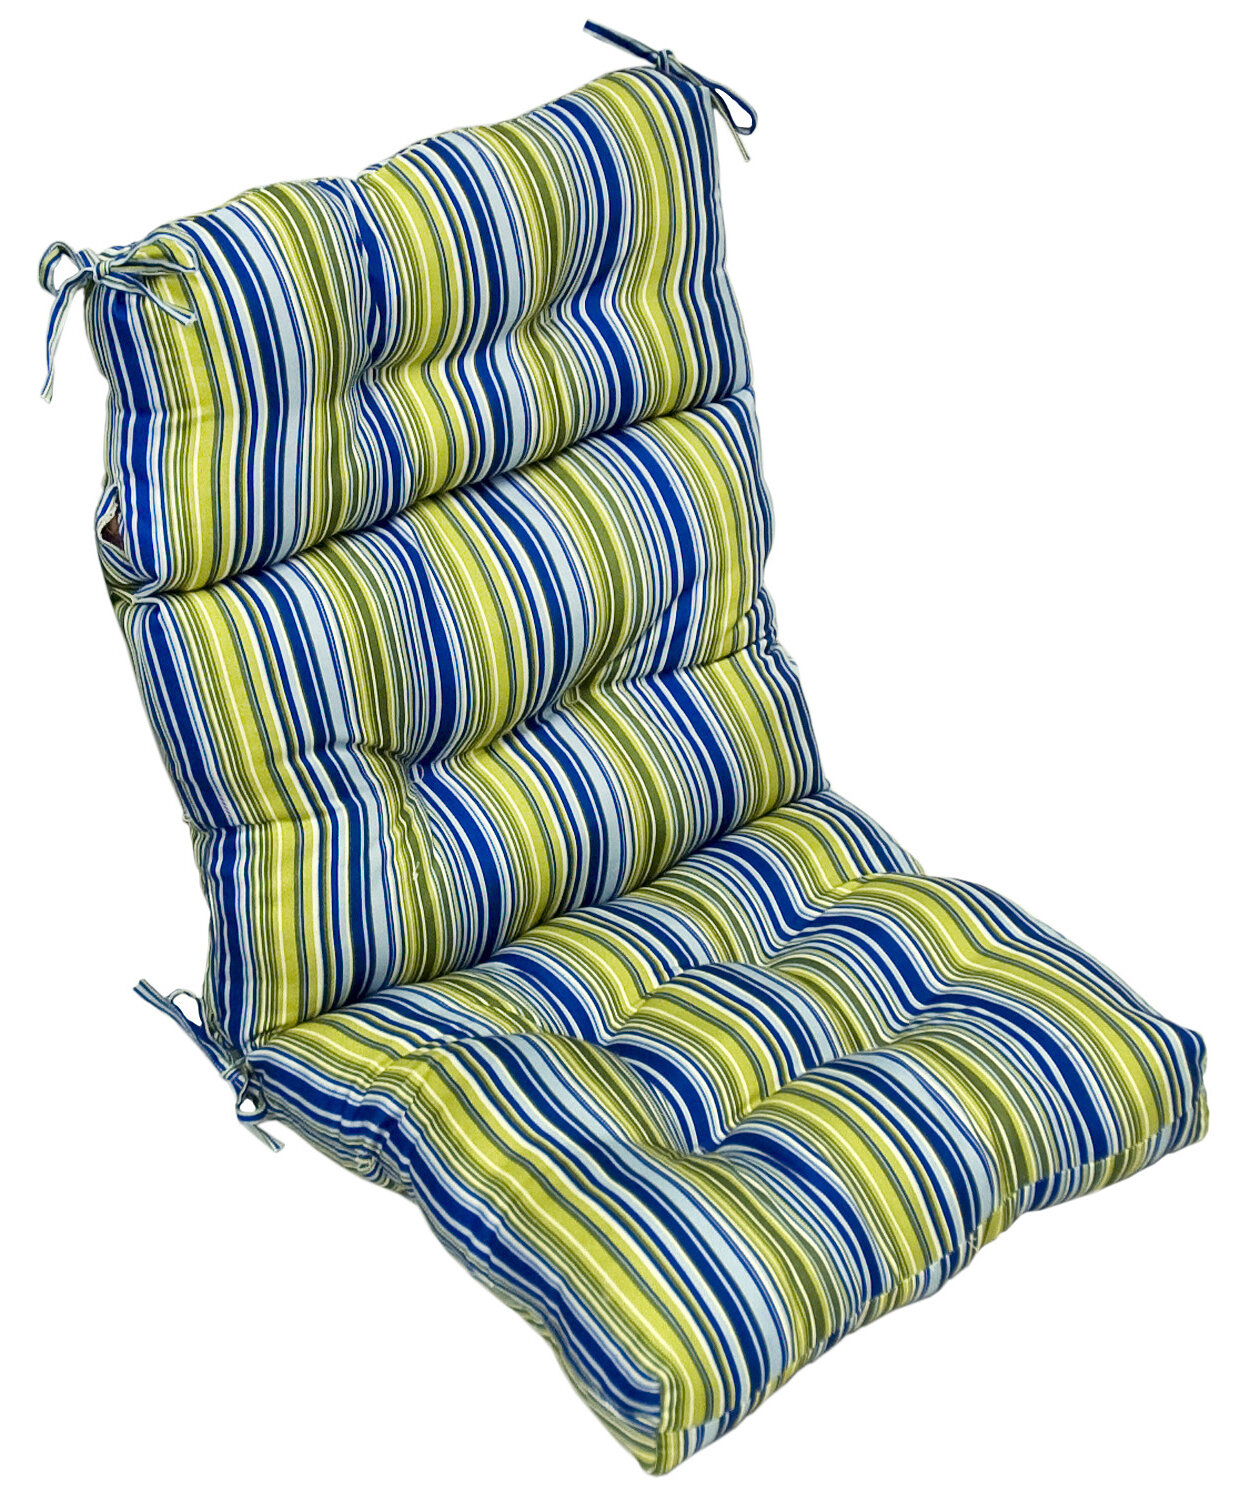 High Back Garden Chair Cushions Outdoor High Back Chair  : 1 from mermaidsofthelake.com size 1246 x 1500 jpeg 621kB